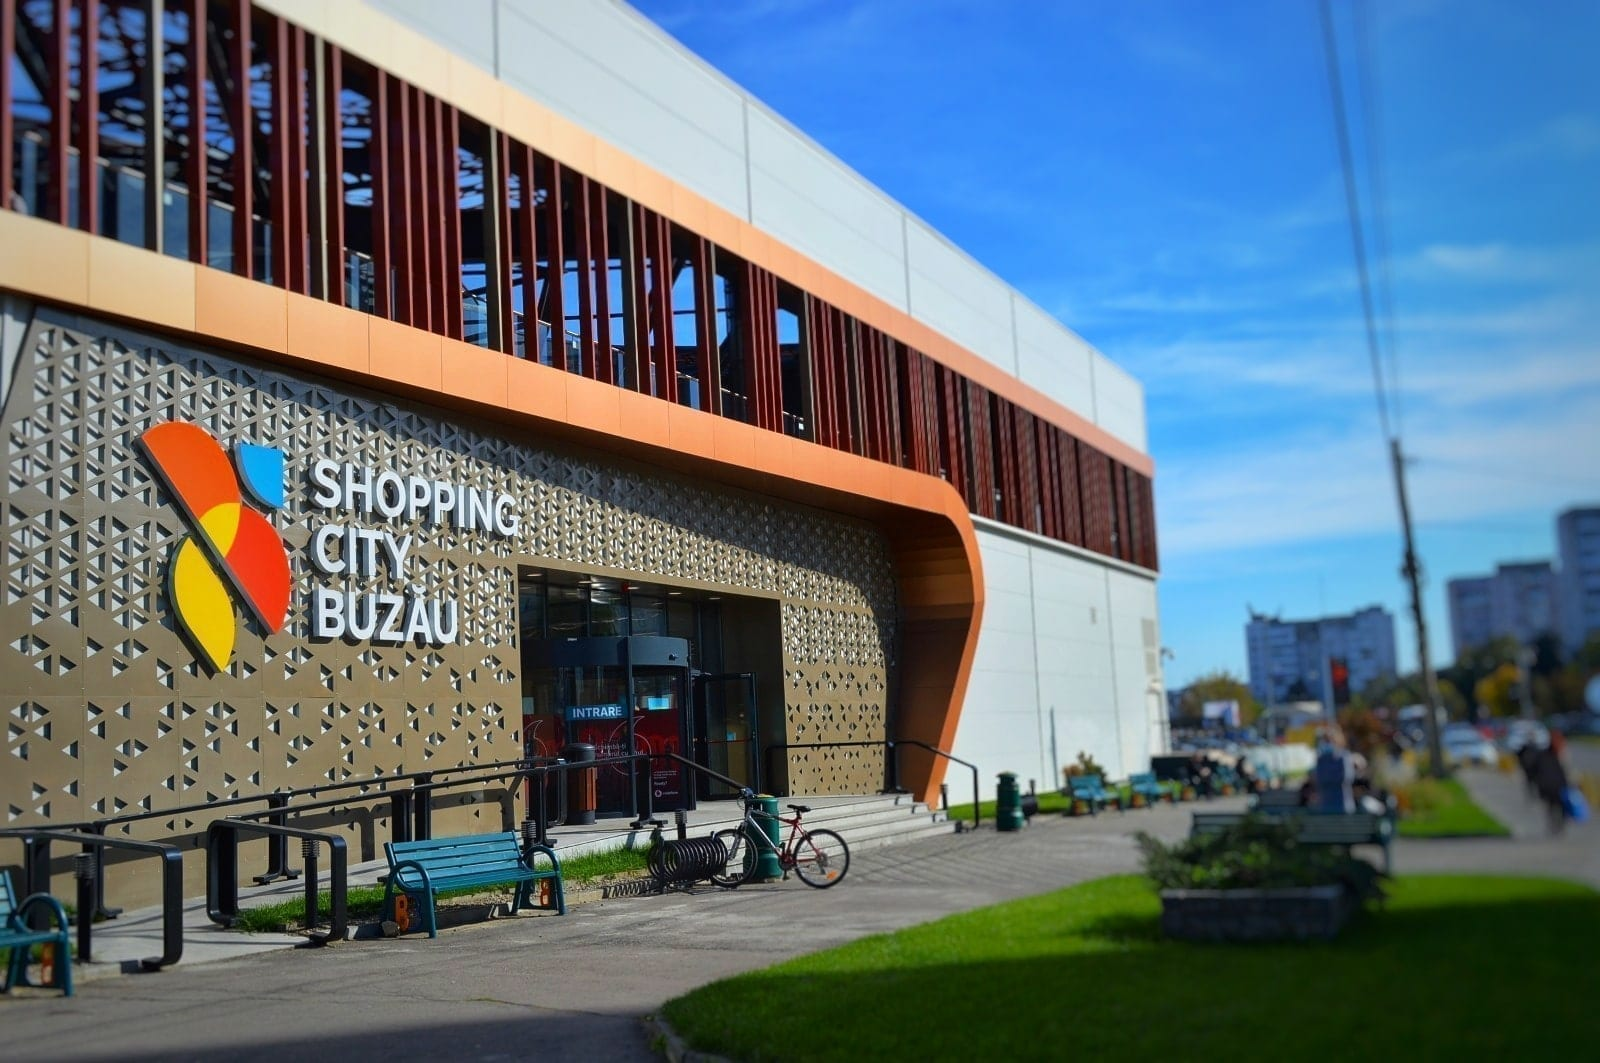 shopping city buzau